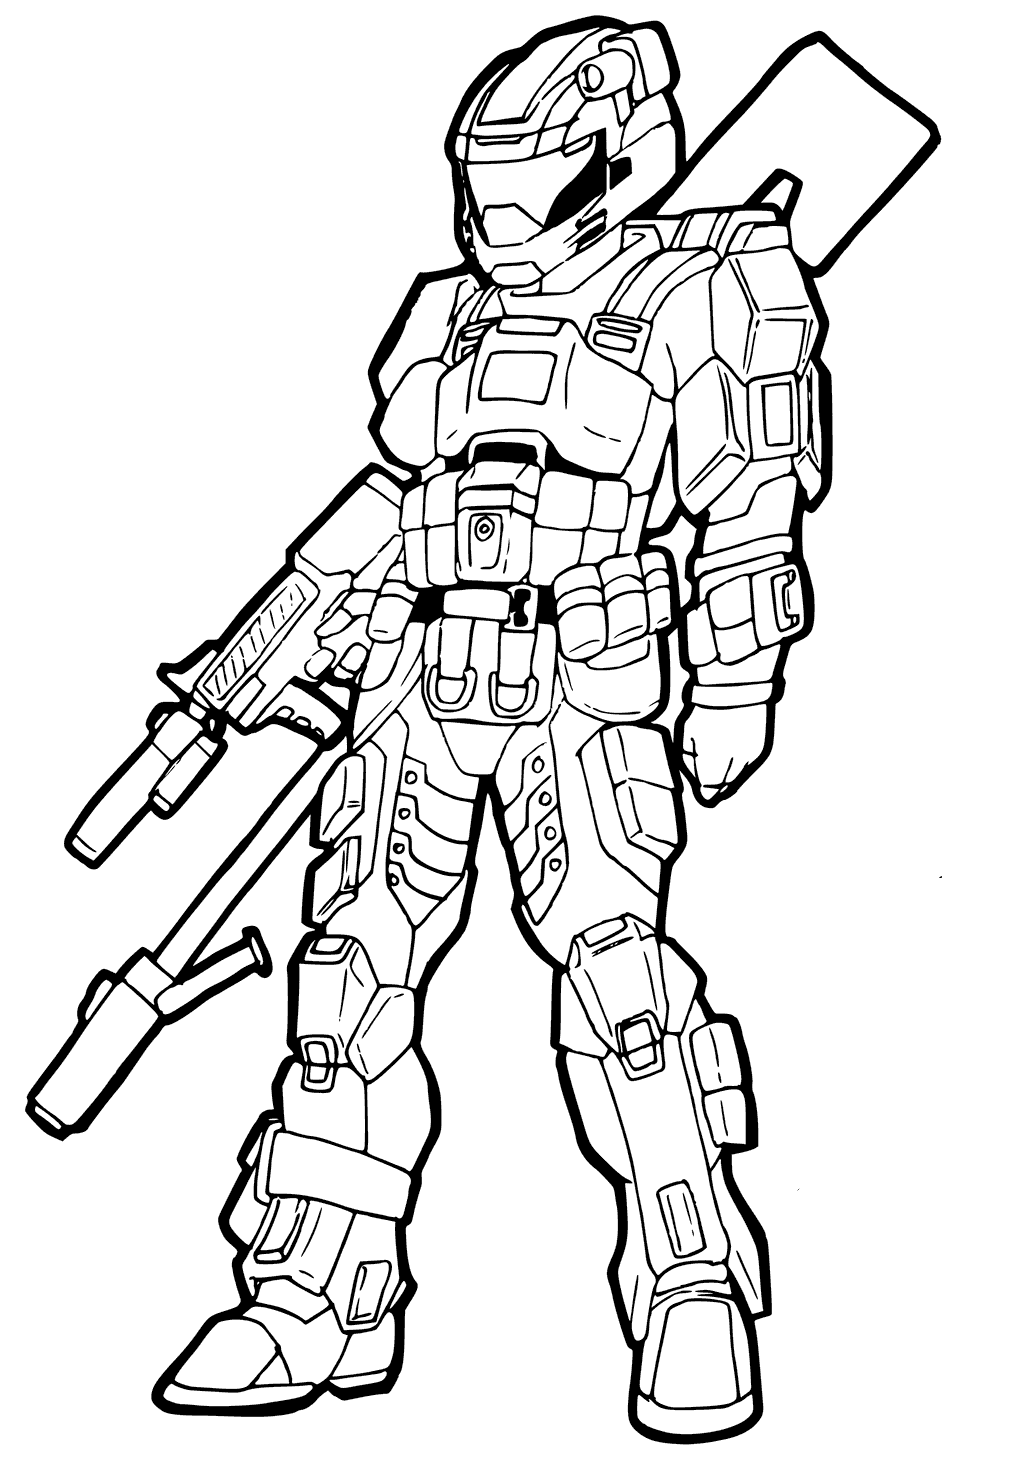 Halo 5 Coloring Pages